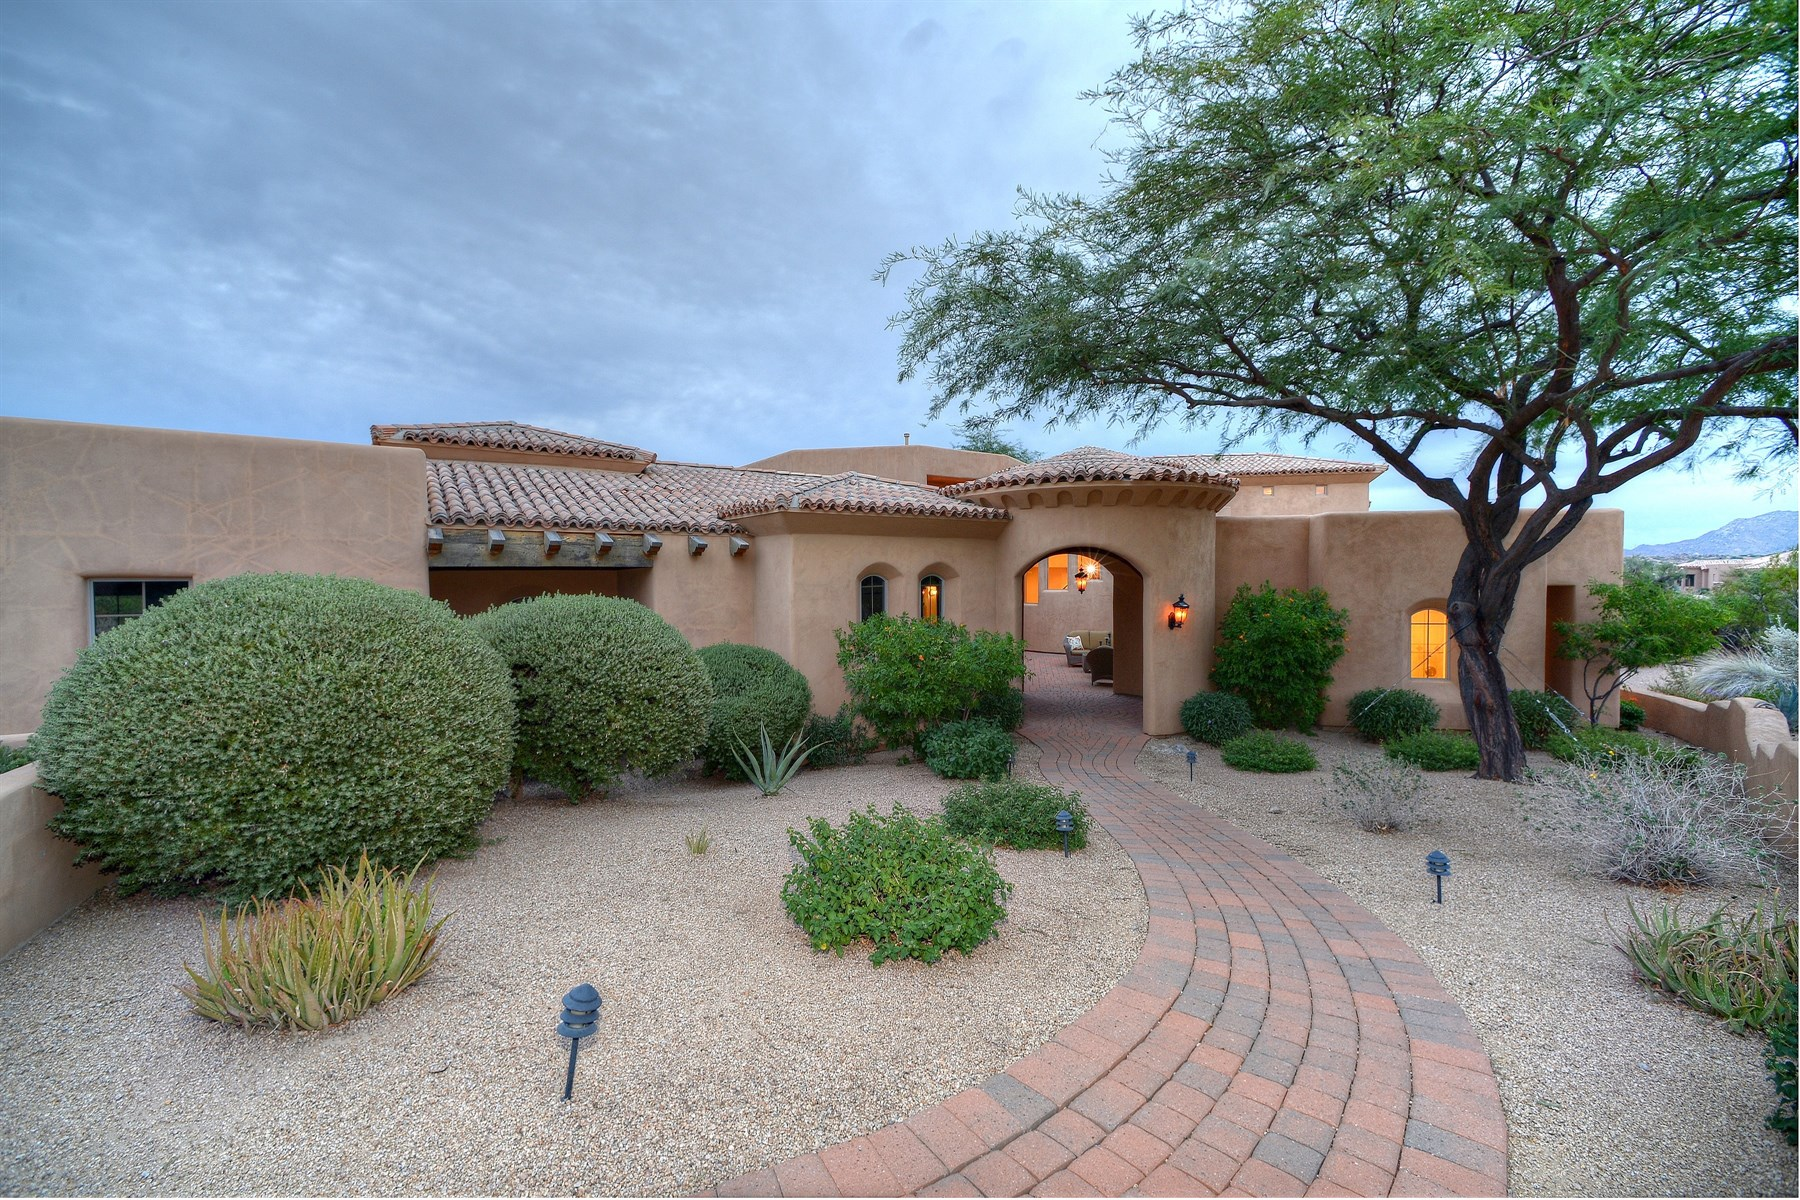 Single Family Home for Sale at Beautiful five bedroom, five bathroom Tuscan residence 10689 E Blue Sky Dr Scottsdale, Arizona, 85262 United States